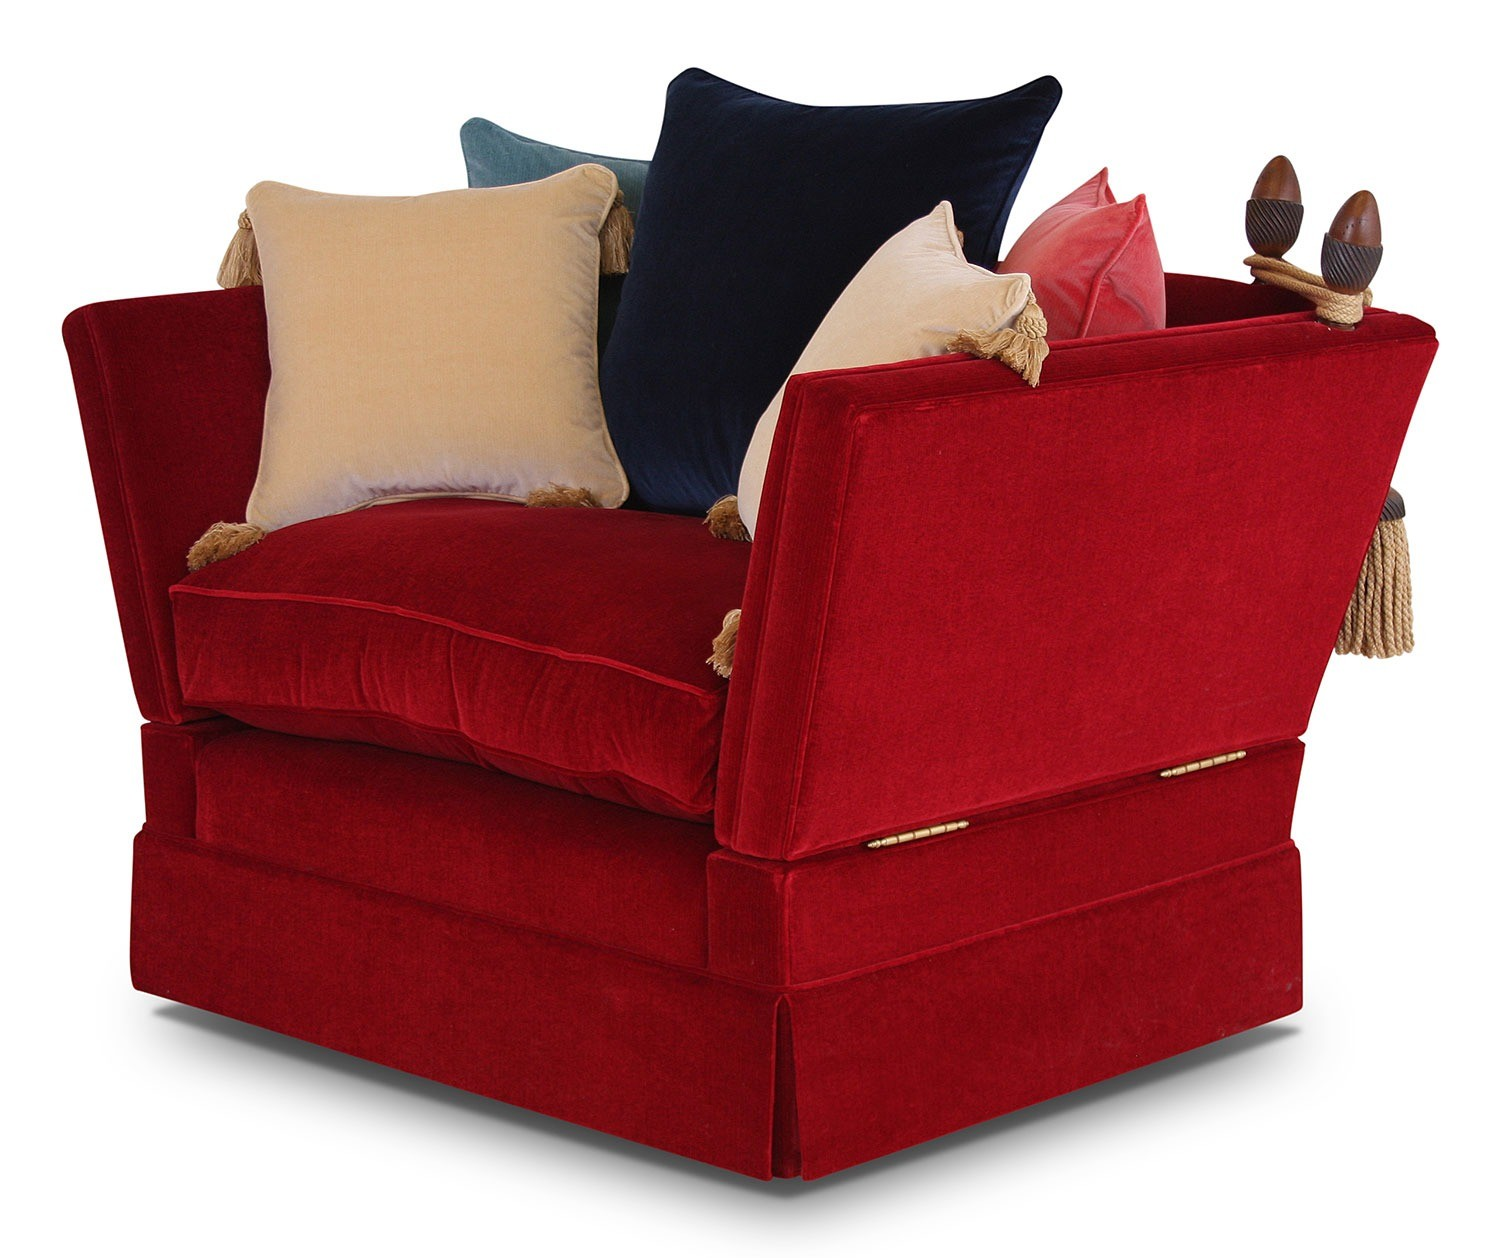 Aston Knole love seat in Riffle velvet